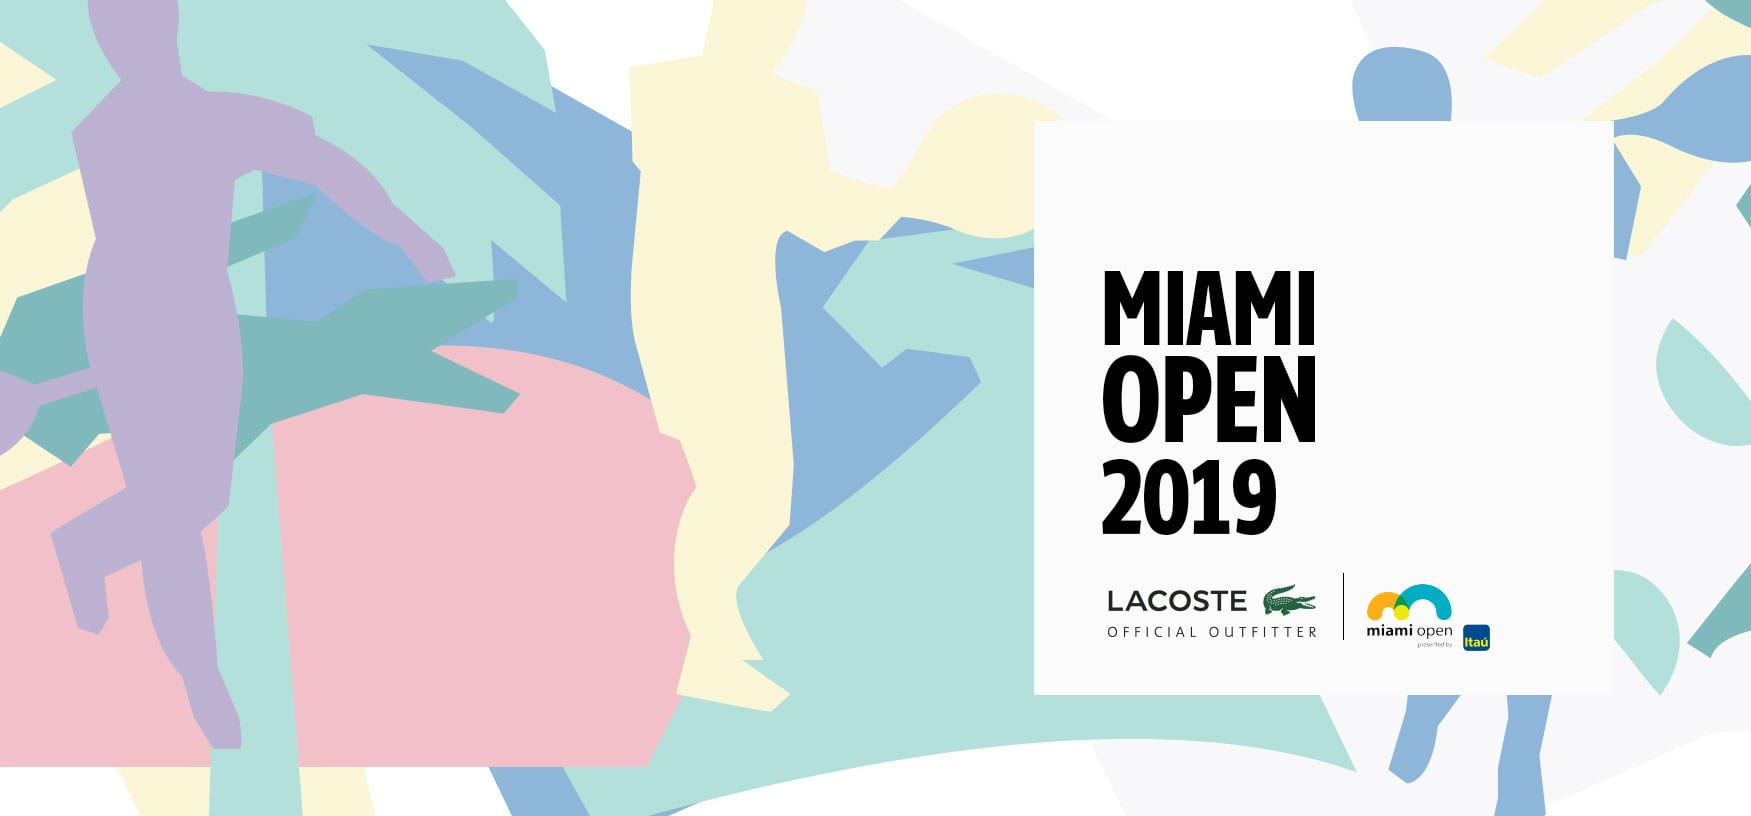 Lacoste offictial outfitter at Miami Open 2019